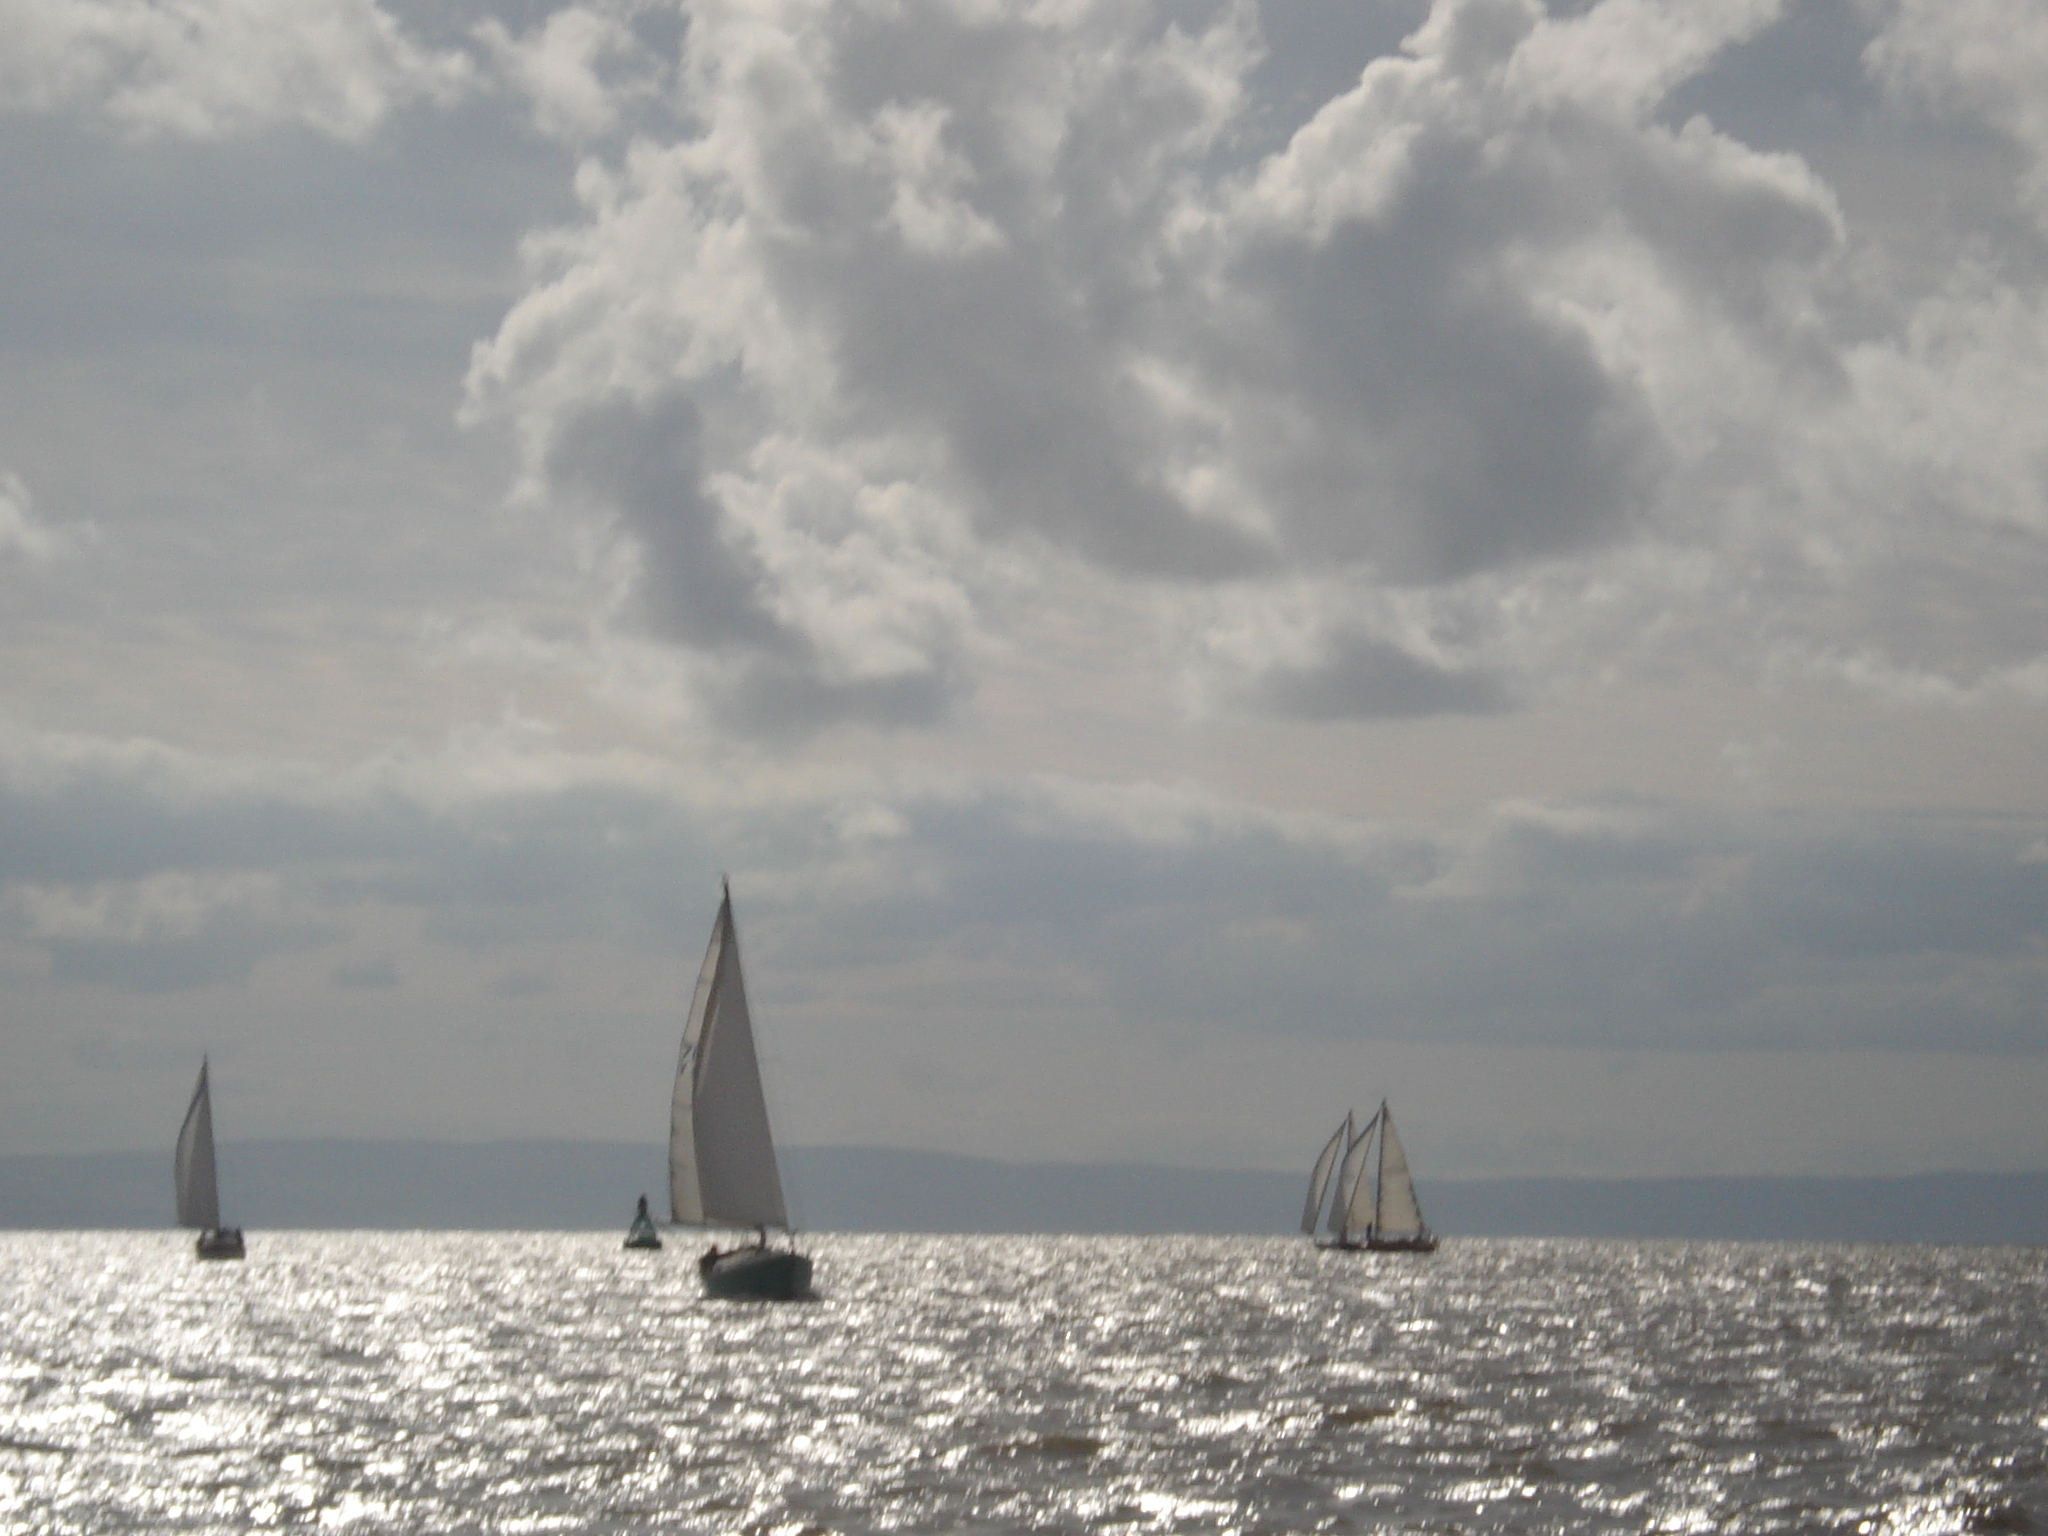 Yachts racing in Bristol Channel